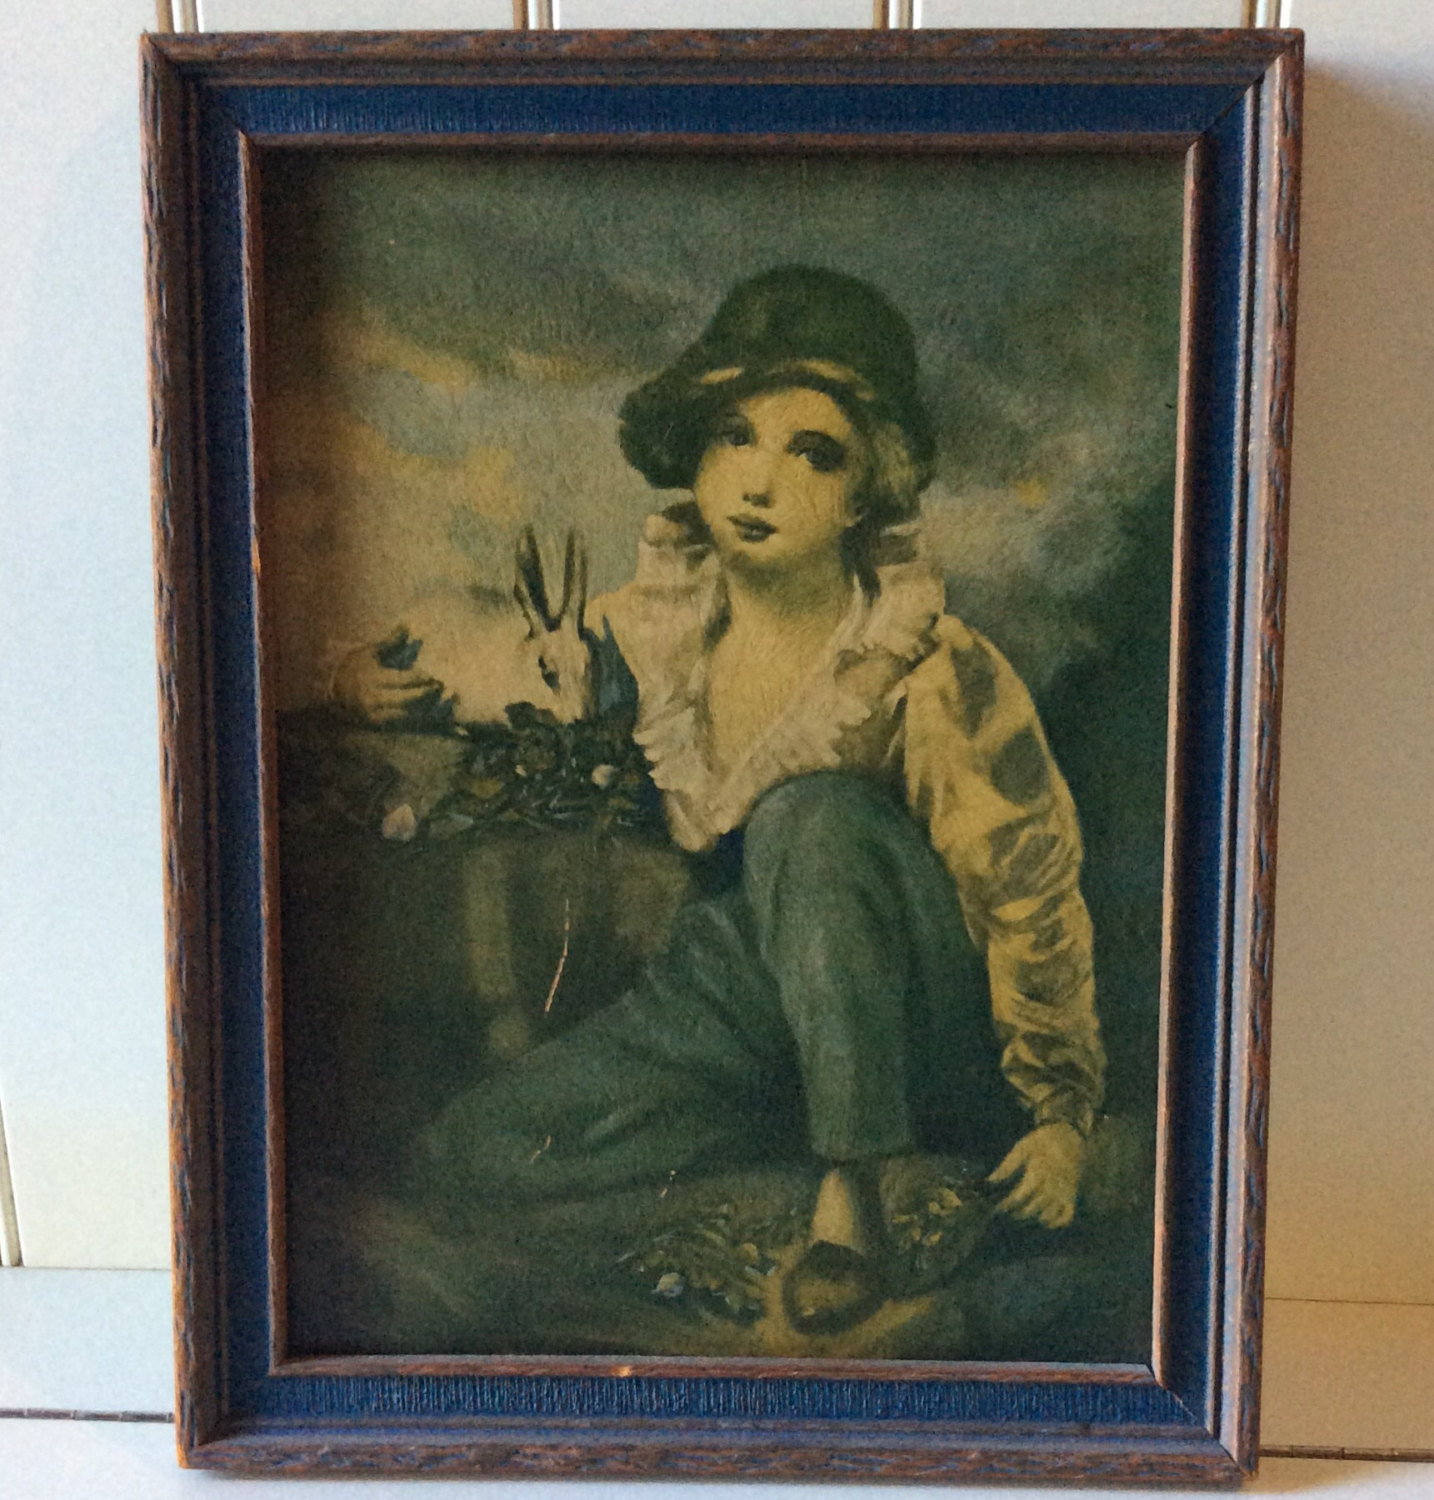 Items similar to Vintage Print Boy and Rabbit by Henry Raeburn on Etsy.